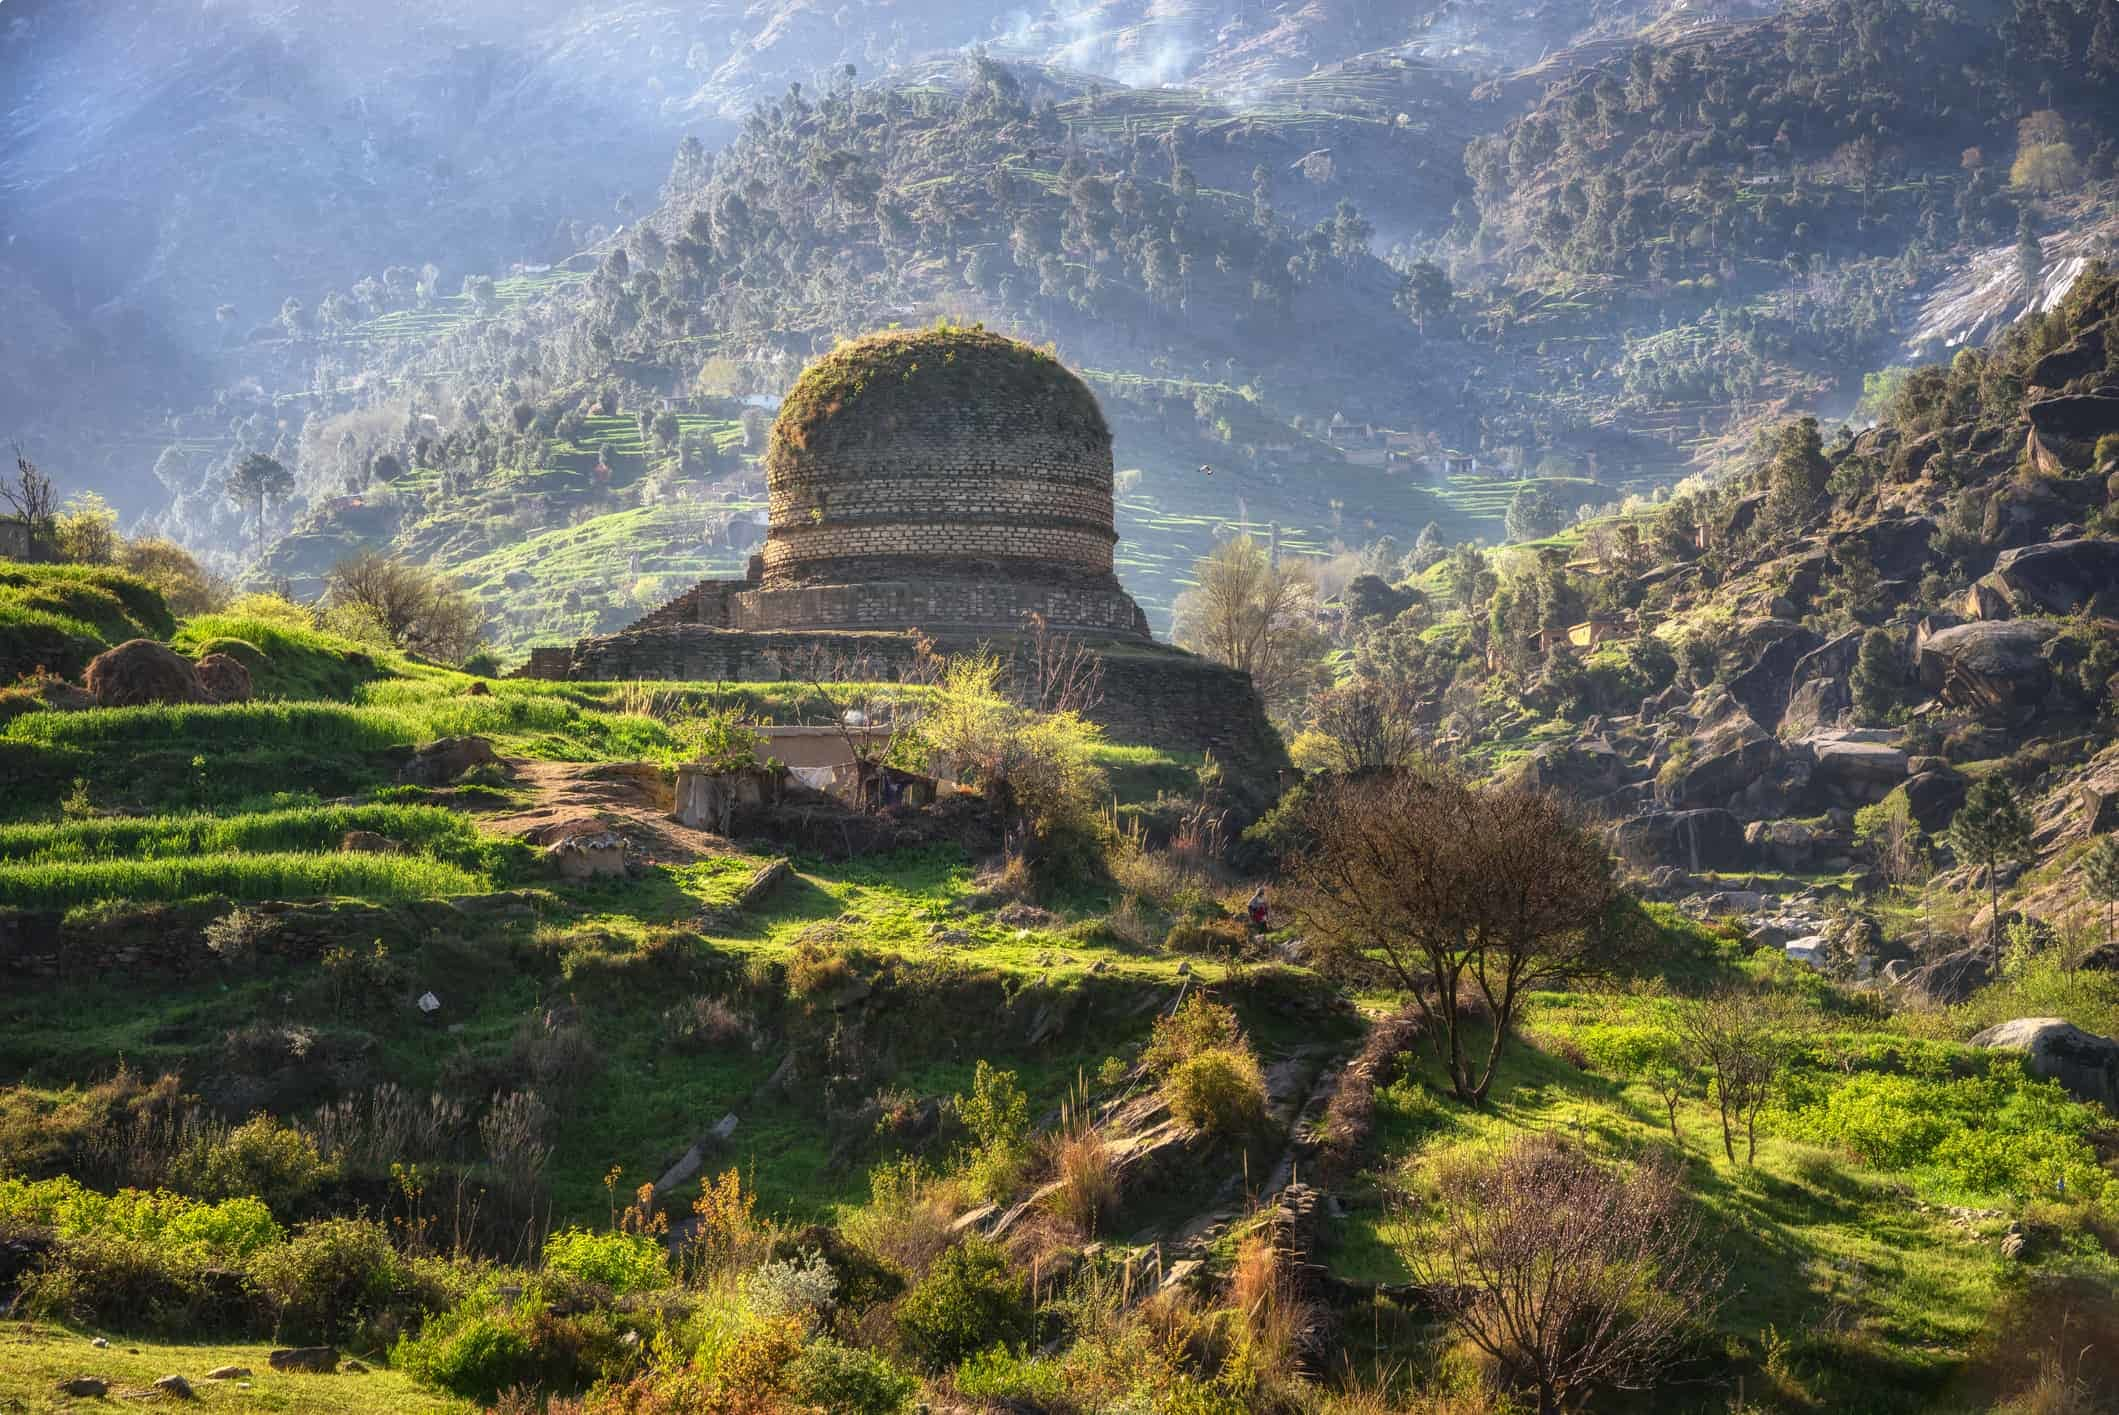 A Buddhist stupa in the Swat Valley Pakistan